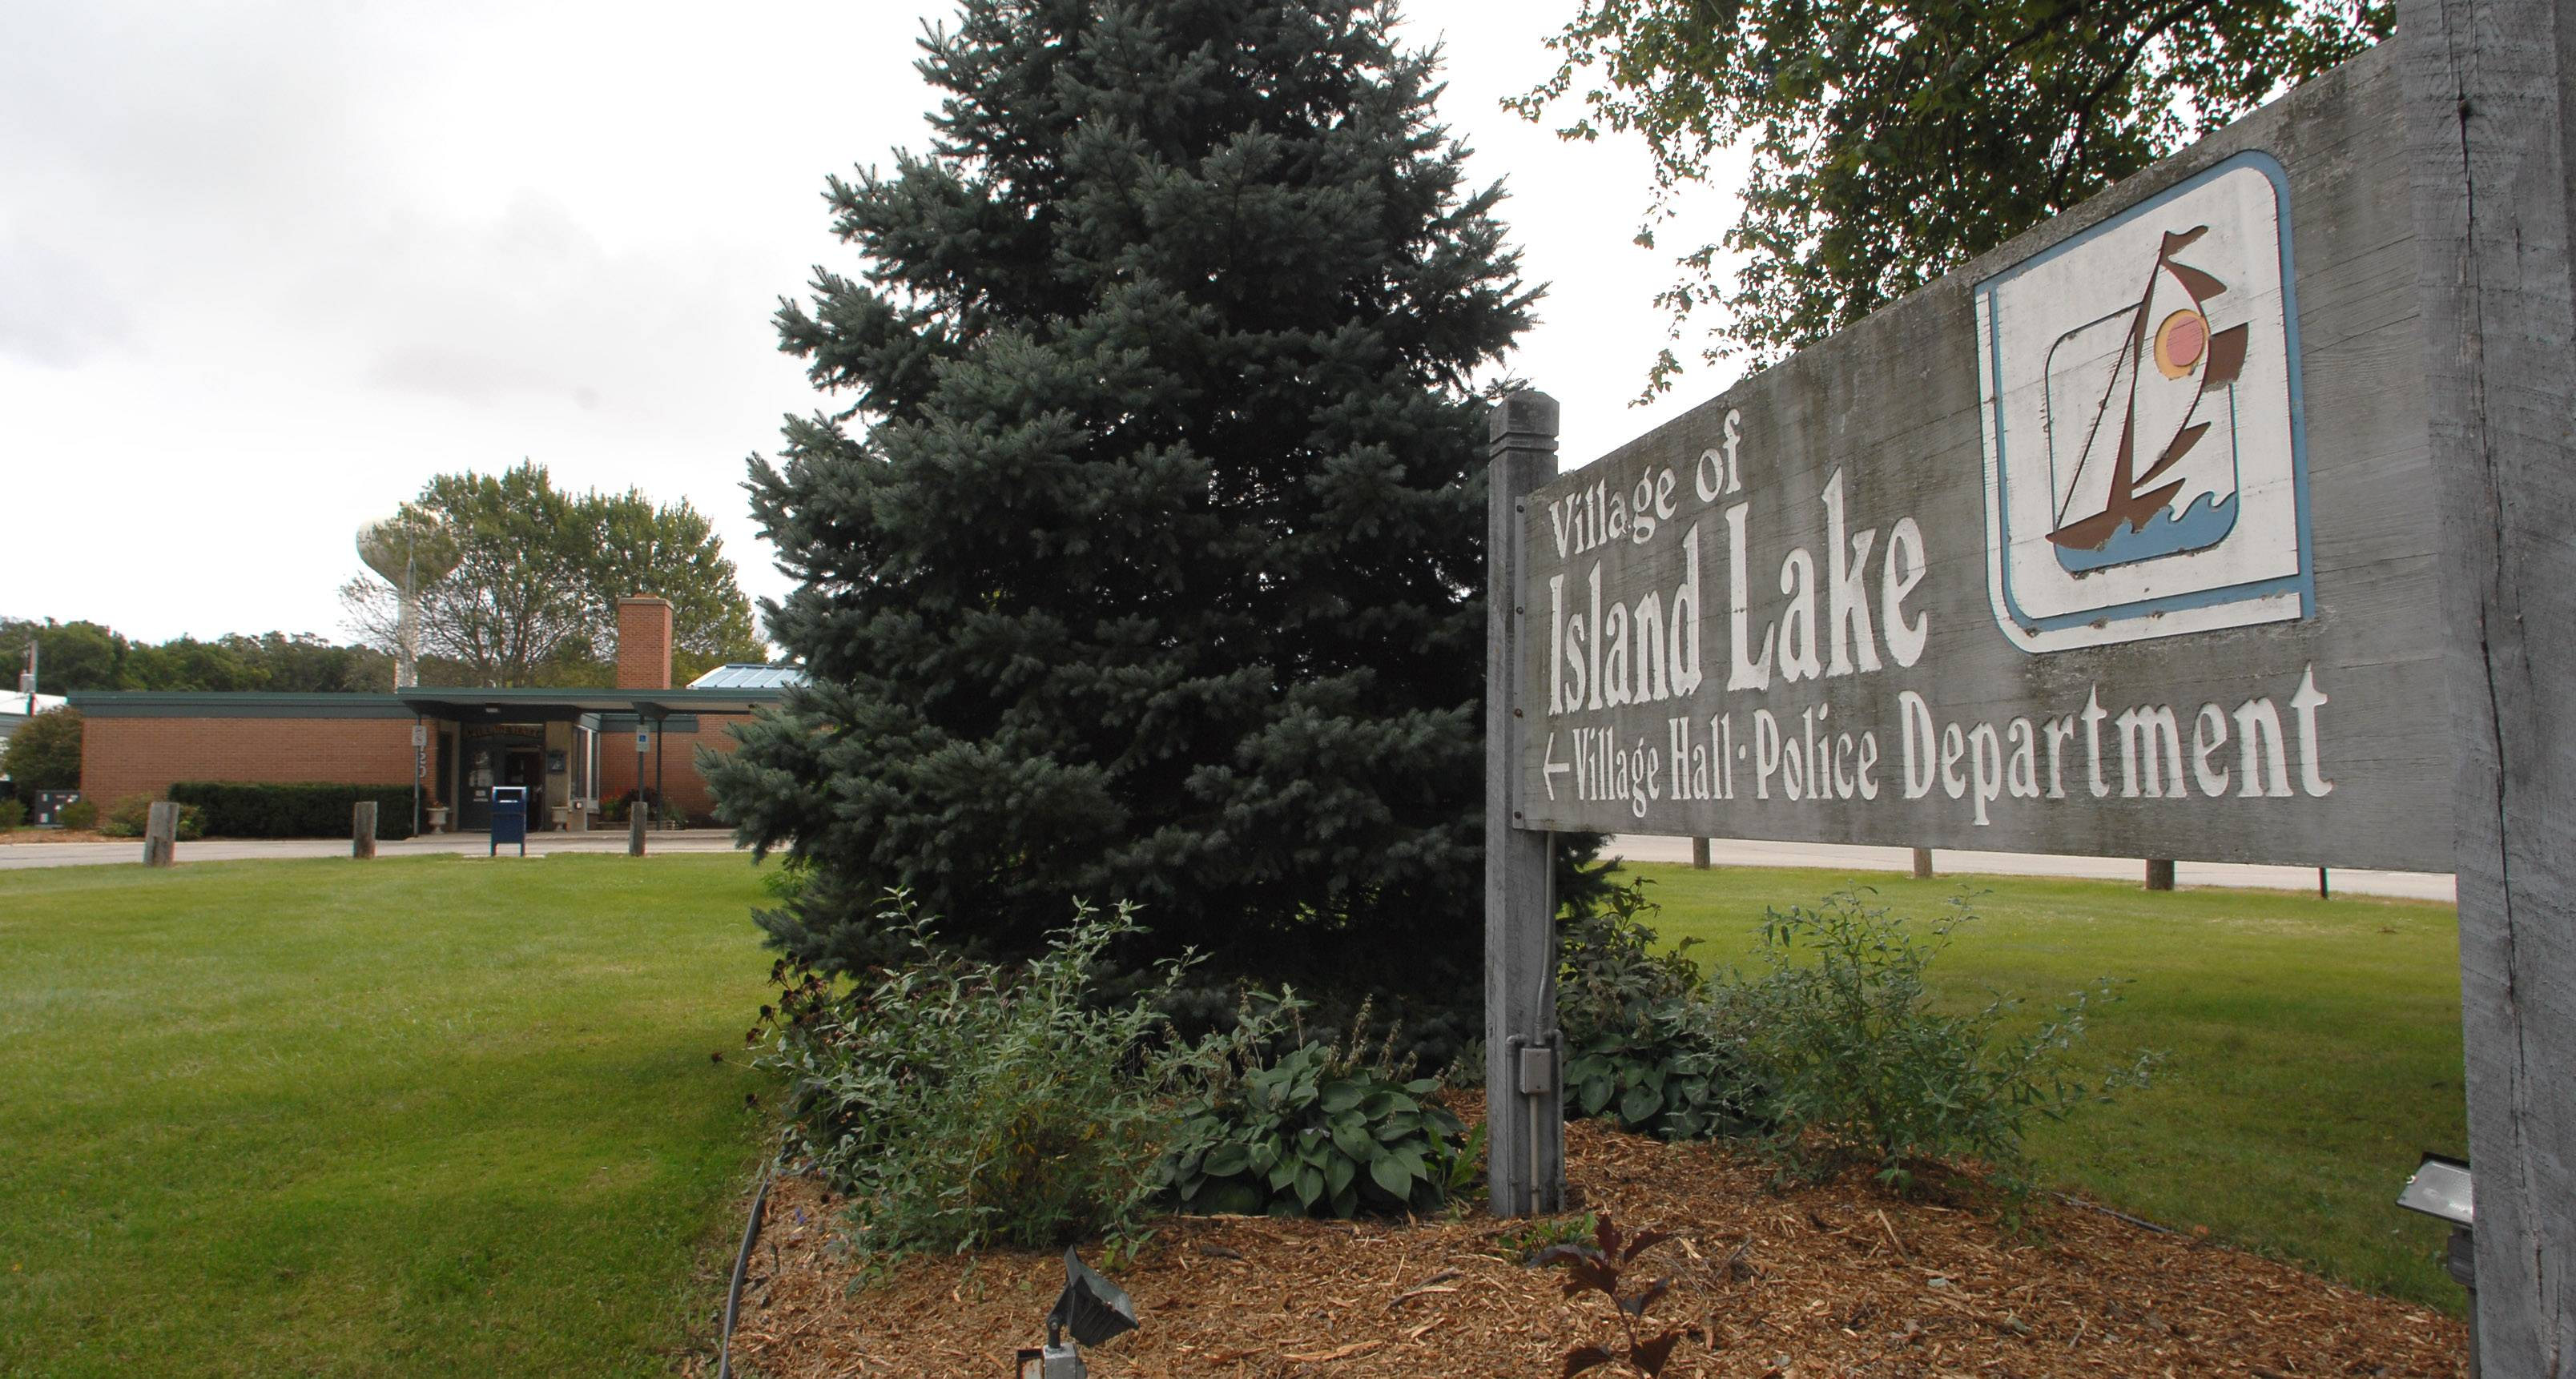 Island Lake's village board will hear a pitch Thursday night from a local business owner who wants to buy a portion of a local street. Mike Johnson says he and his employees are the only drivers who use the stretch of Bassler Drive he hopes to purchase from the village.